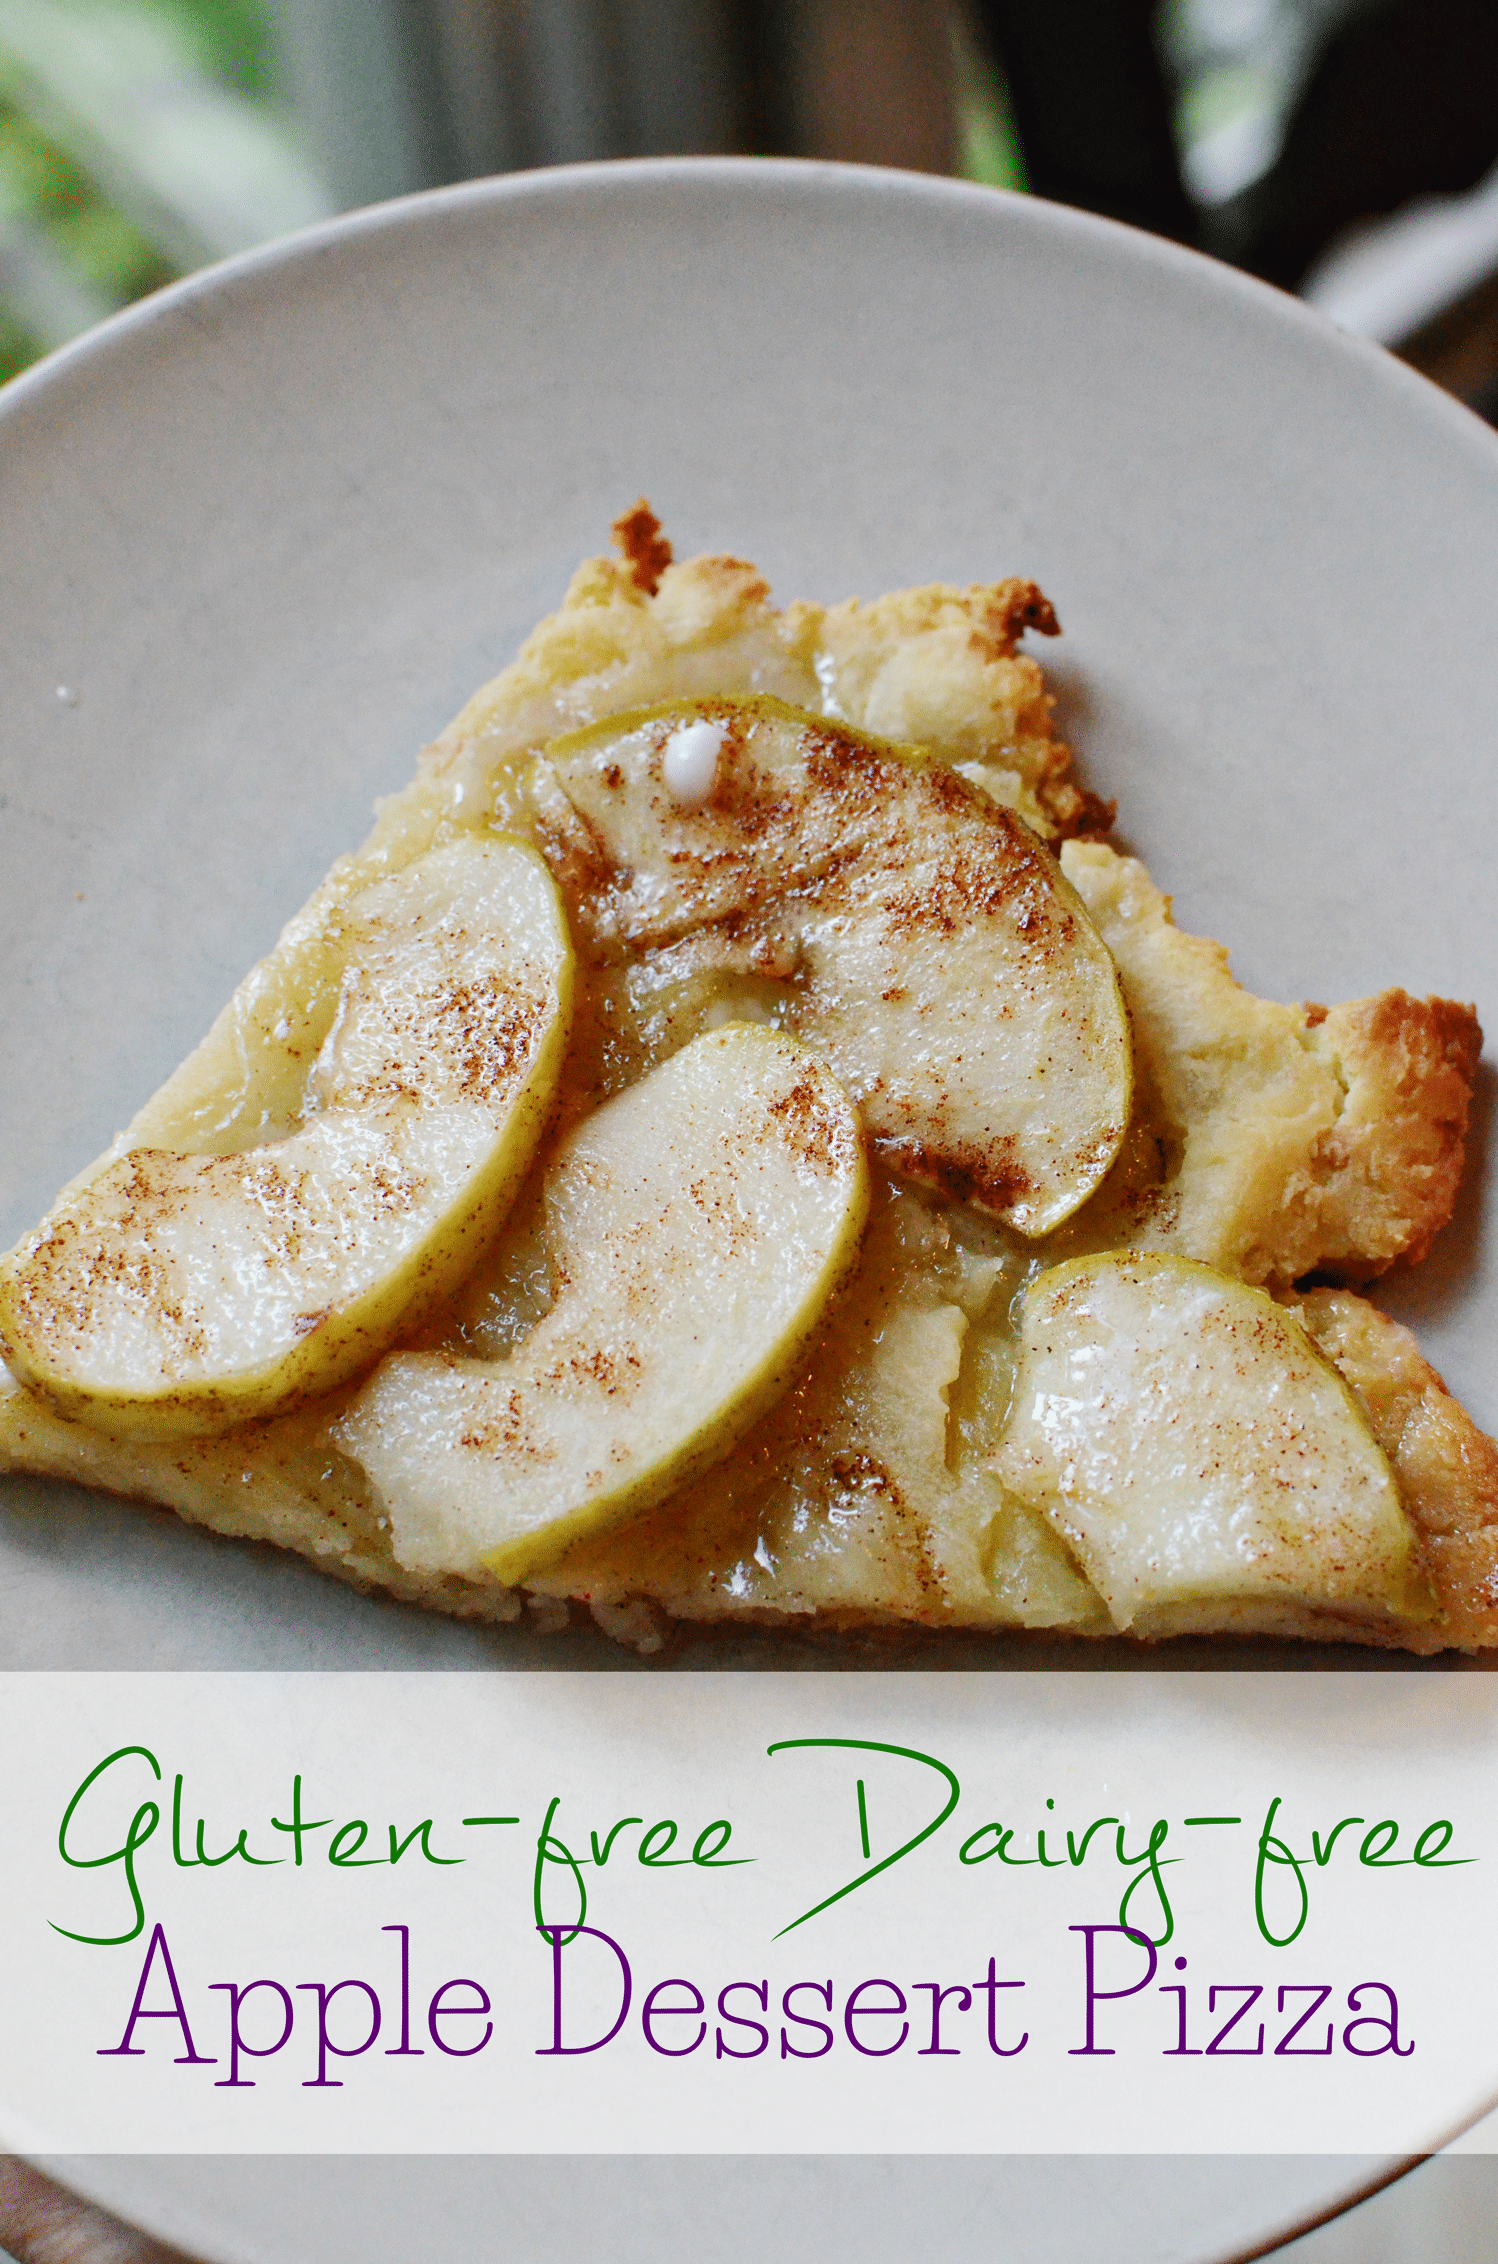 Gluten-Free Dairy-Free Apple Dessert Pizza